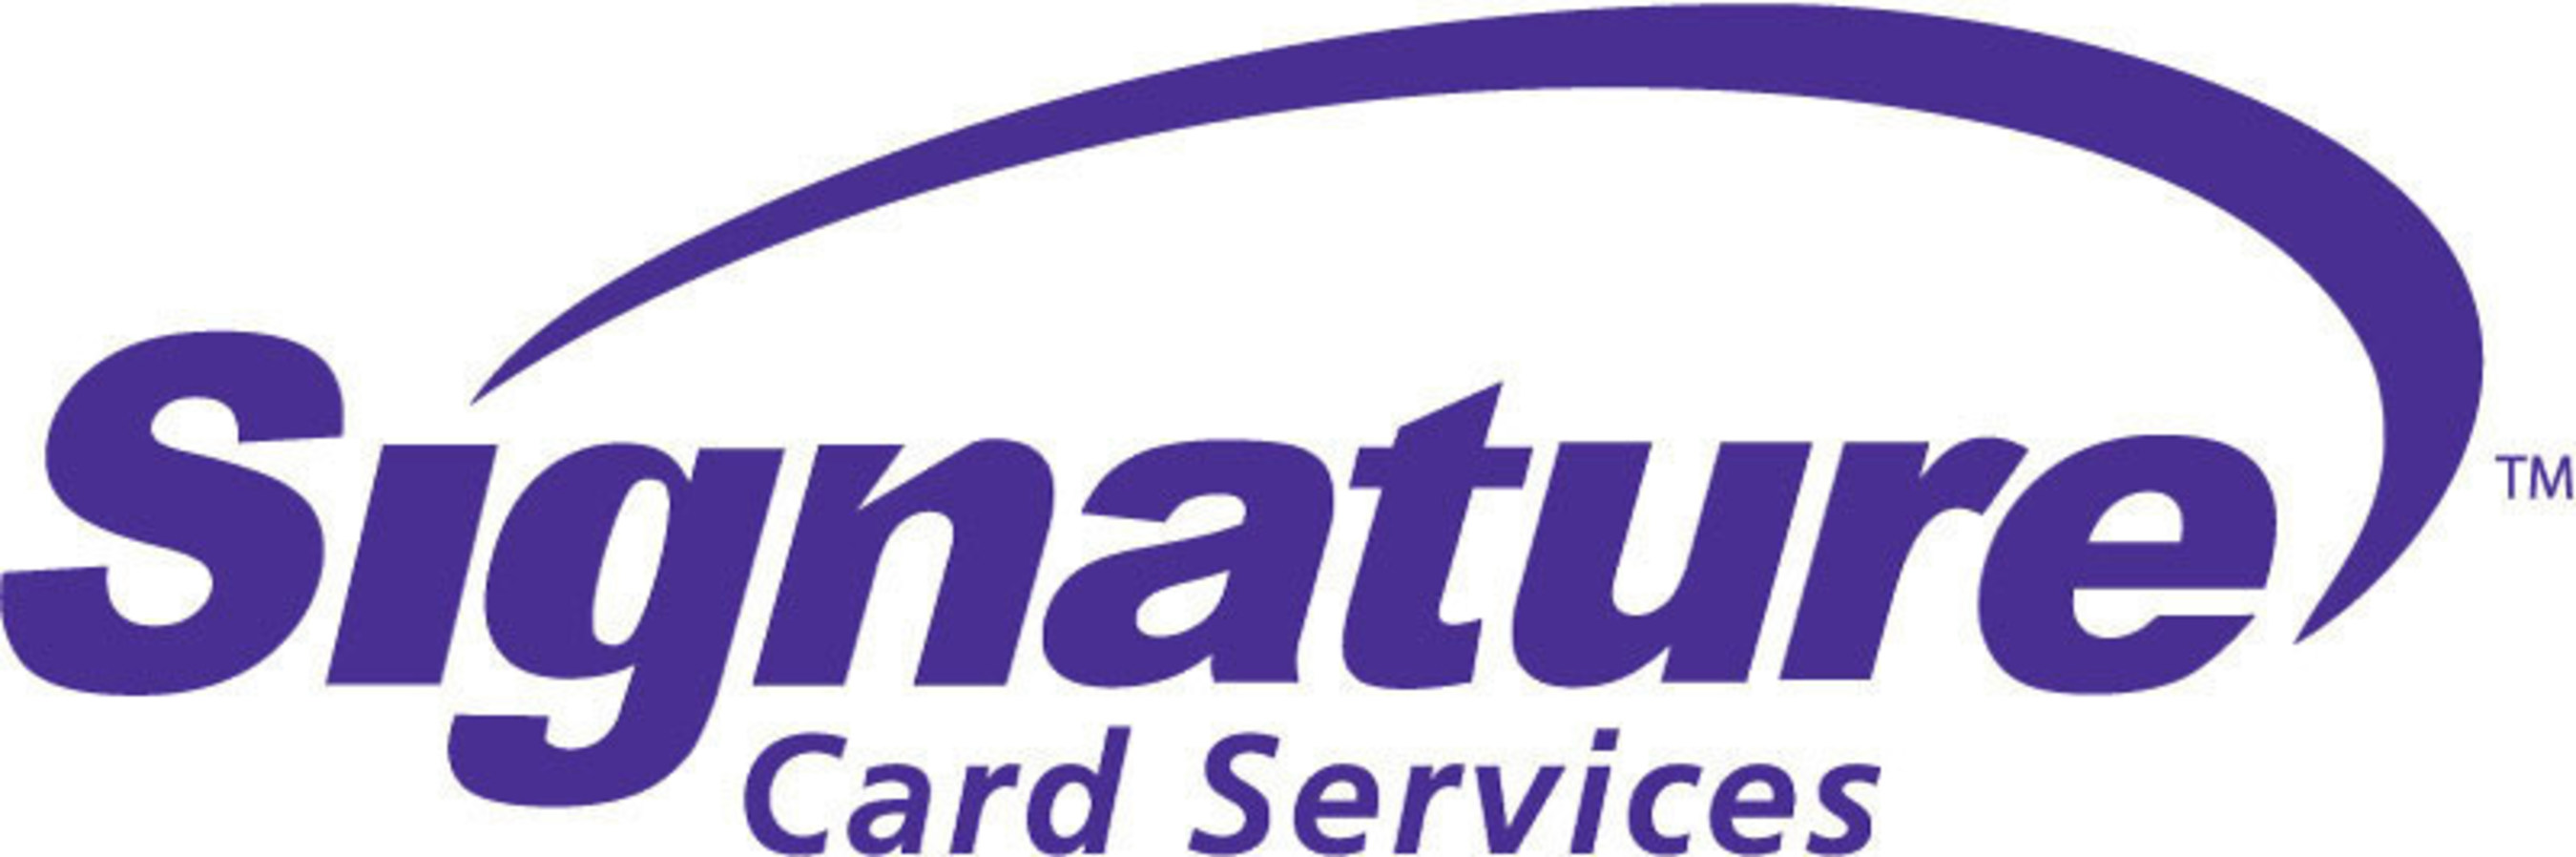 Signature Card Services Named one of America's Fastest-Growing Companies